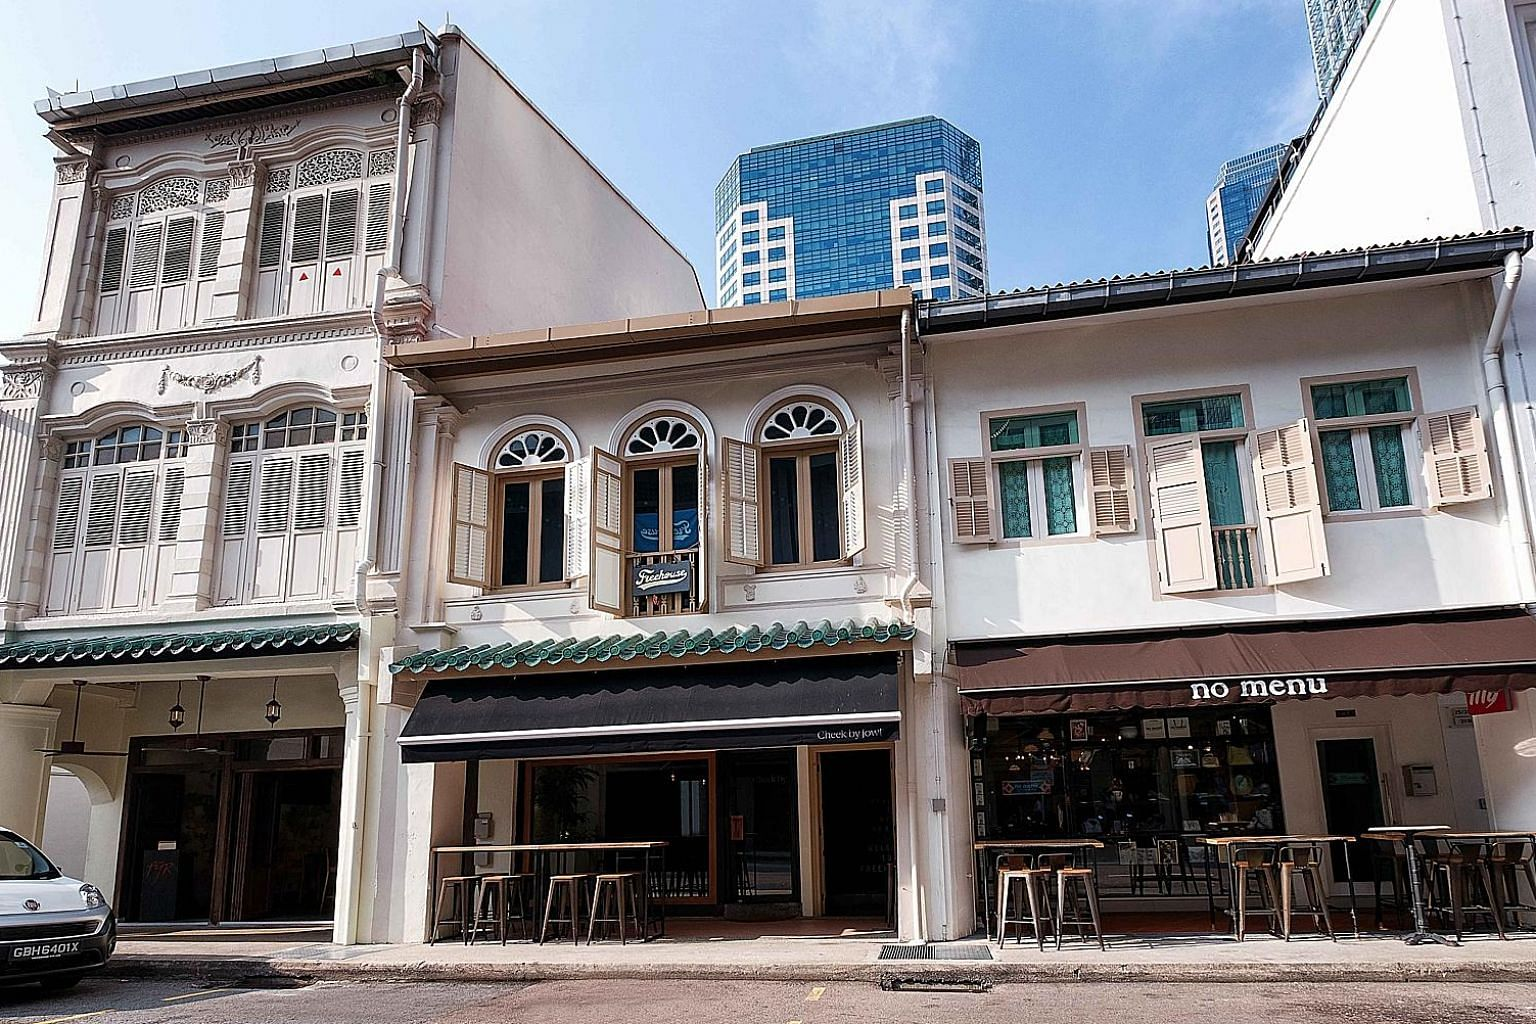 The shophouse in the Telok Ayer Conservation Area has permanent F&B approvals granted for both floors, and houses the Michelin-starred restaurant Cheek by Jowl.